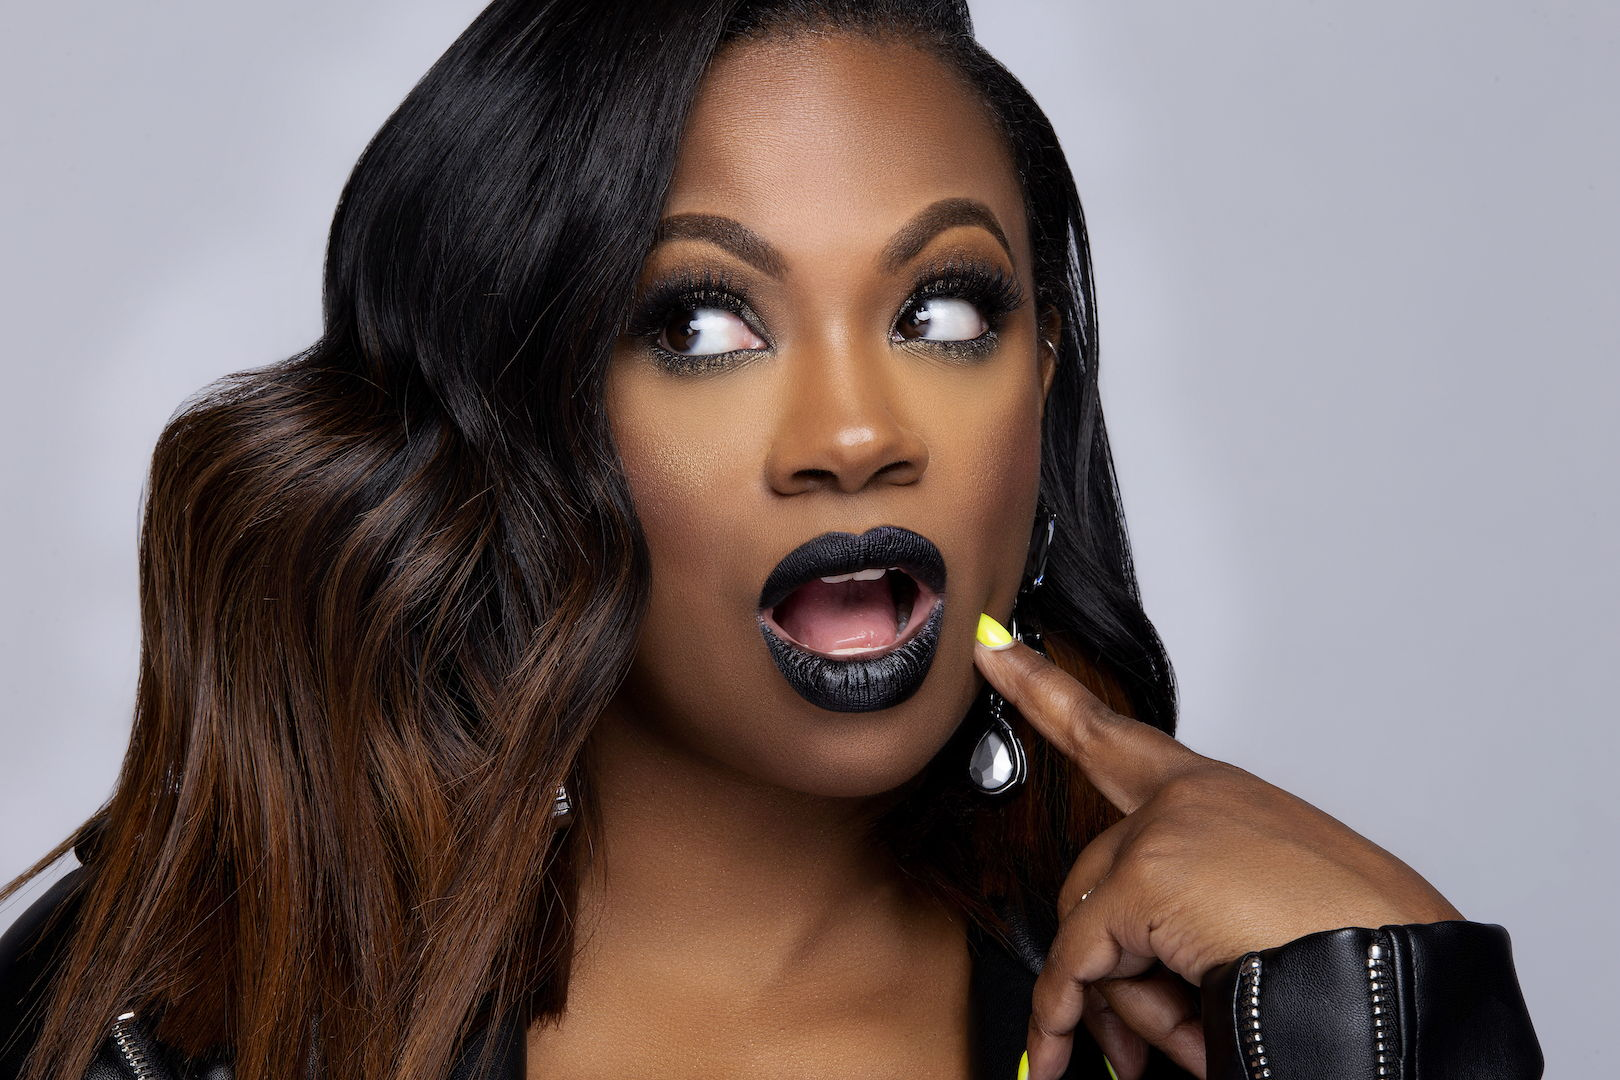 """""""kandi-burruss-fans-say-shes-lifting-women-with-the-help-of-her-latest-show-welcome-to-the-dungeon-tammy-rivera-is-the-latest-guest-star"""""""